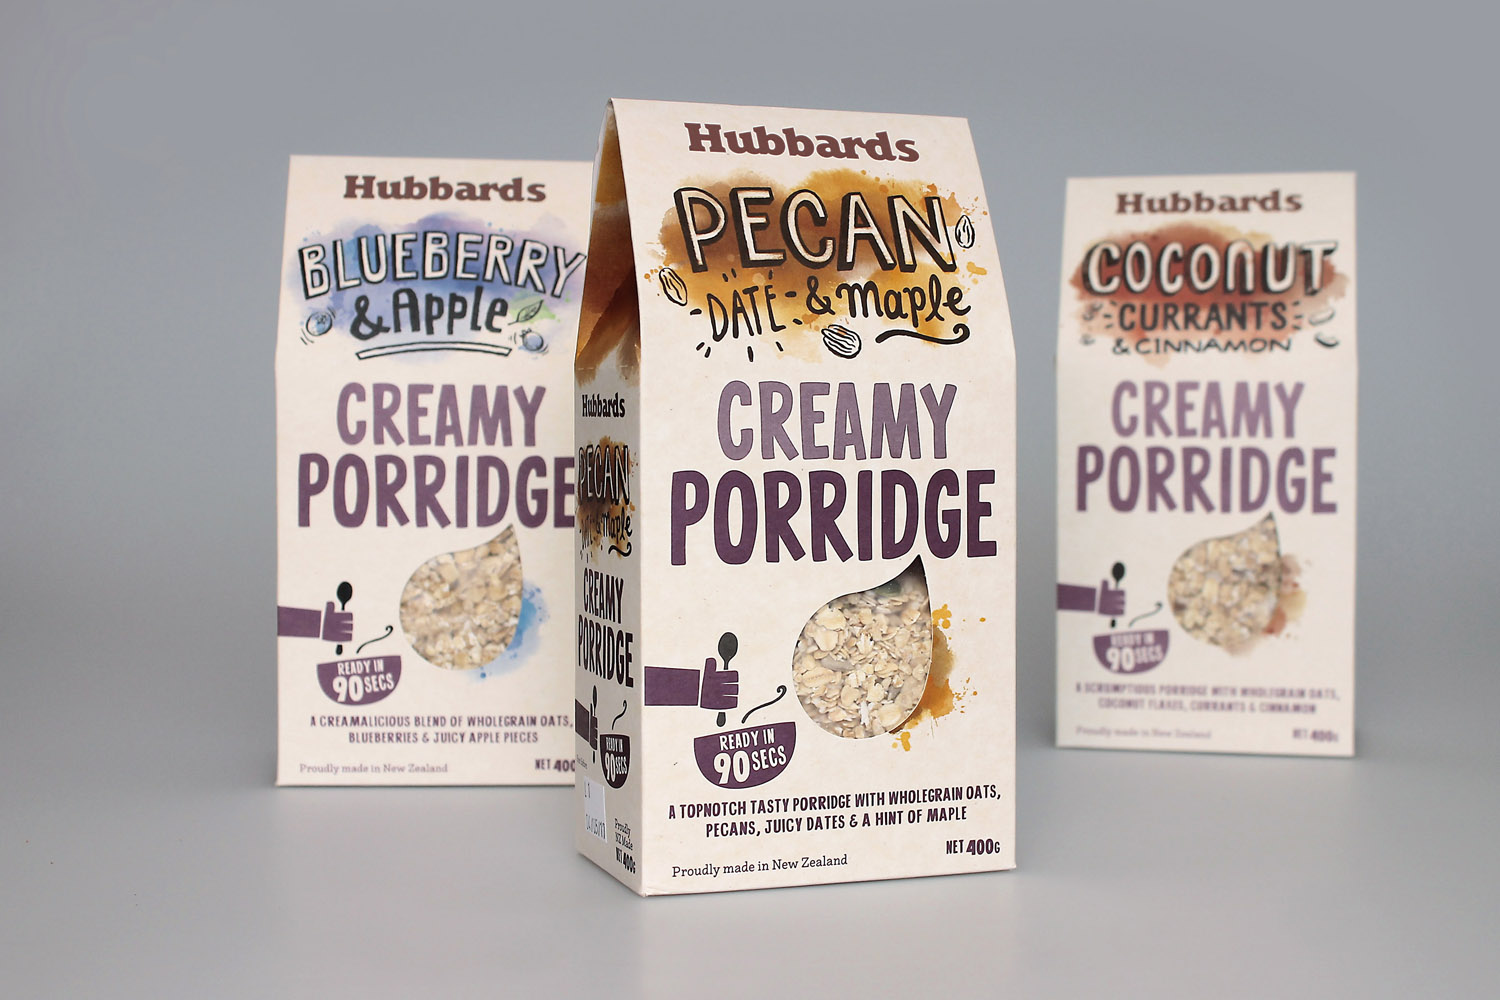 New packaging for Hubbards Porridge designed by Coats, New Zealand